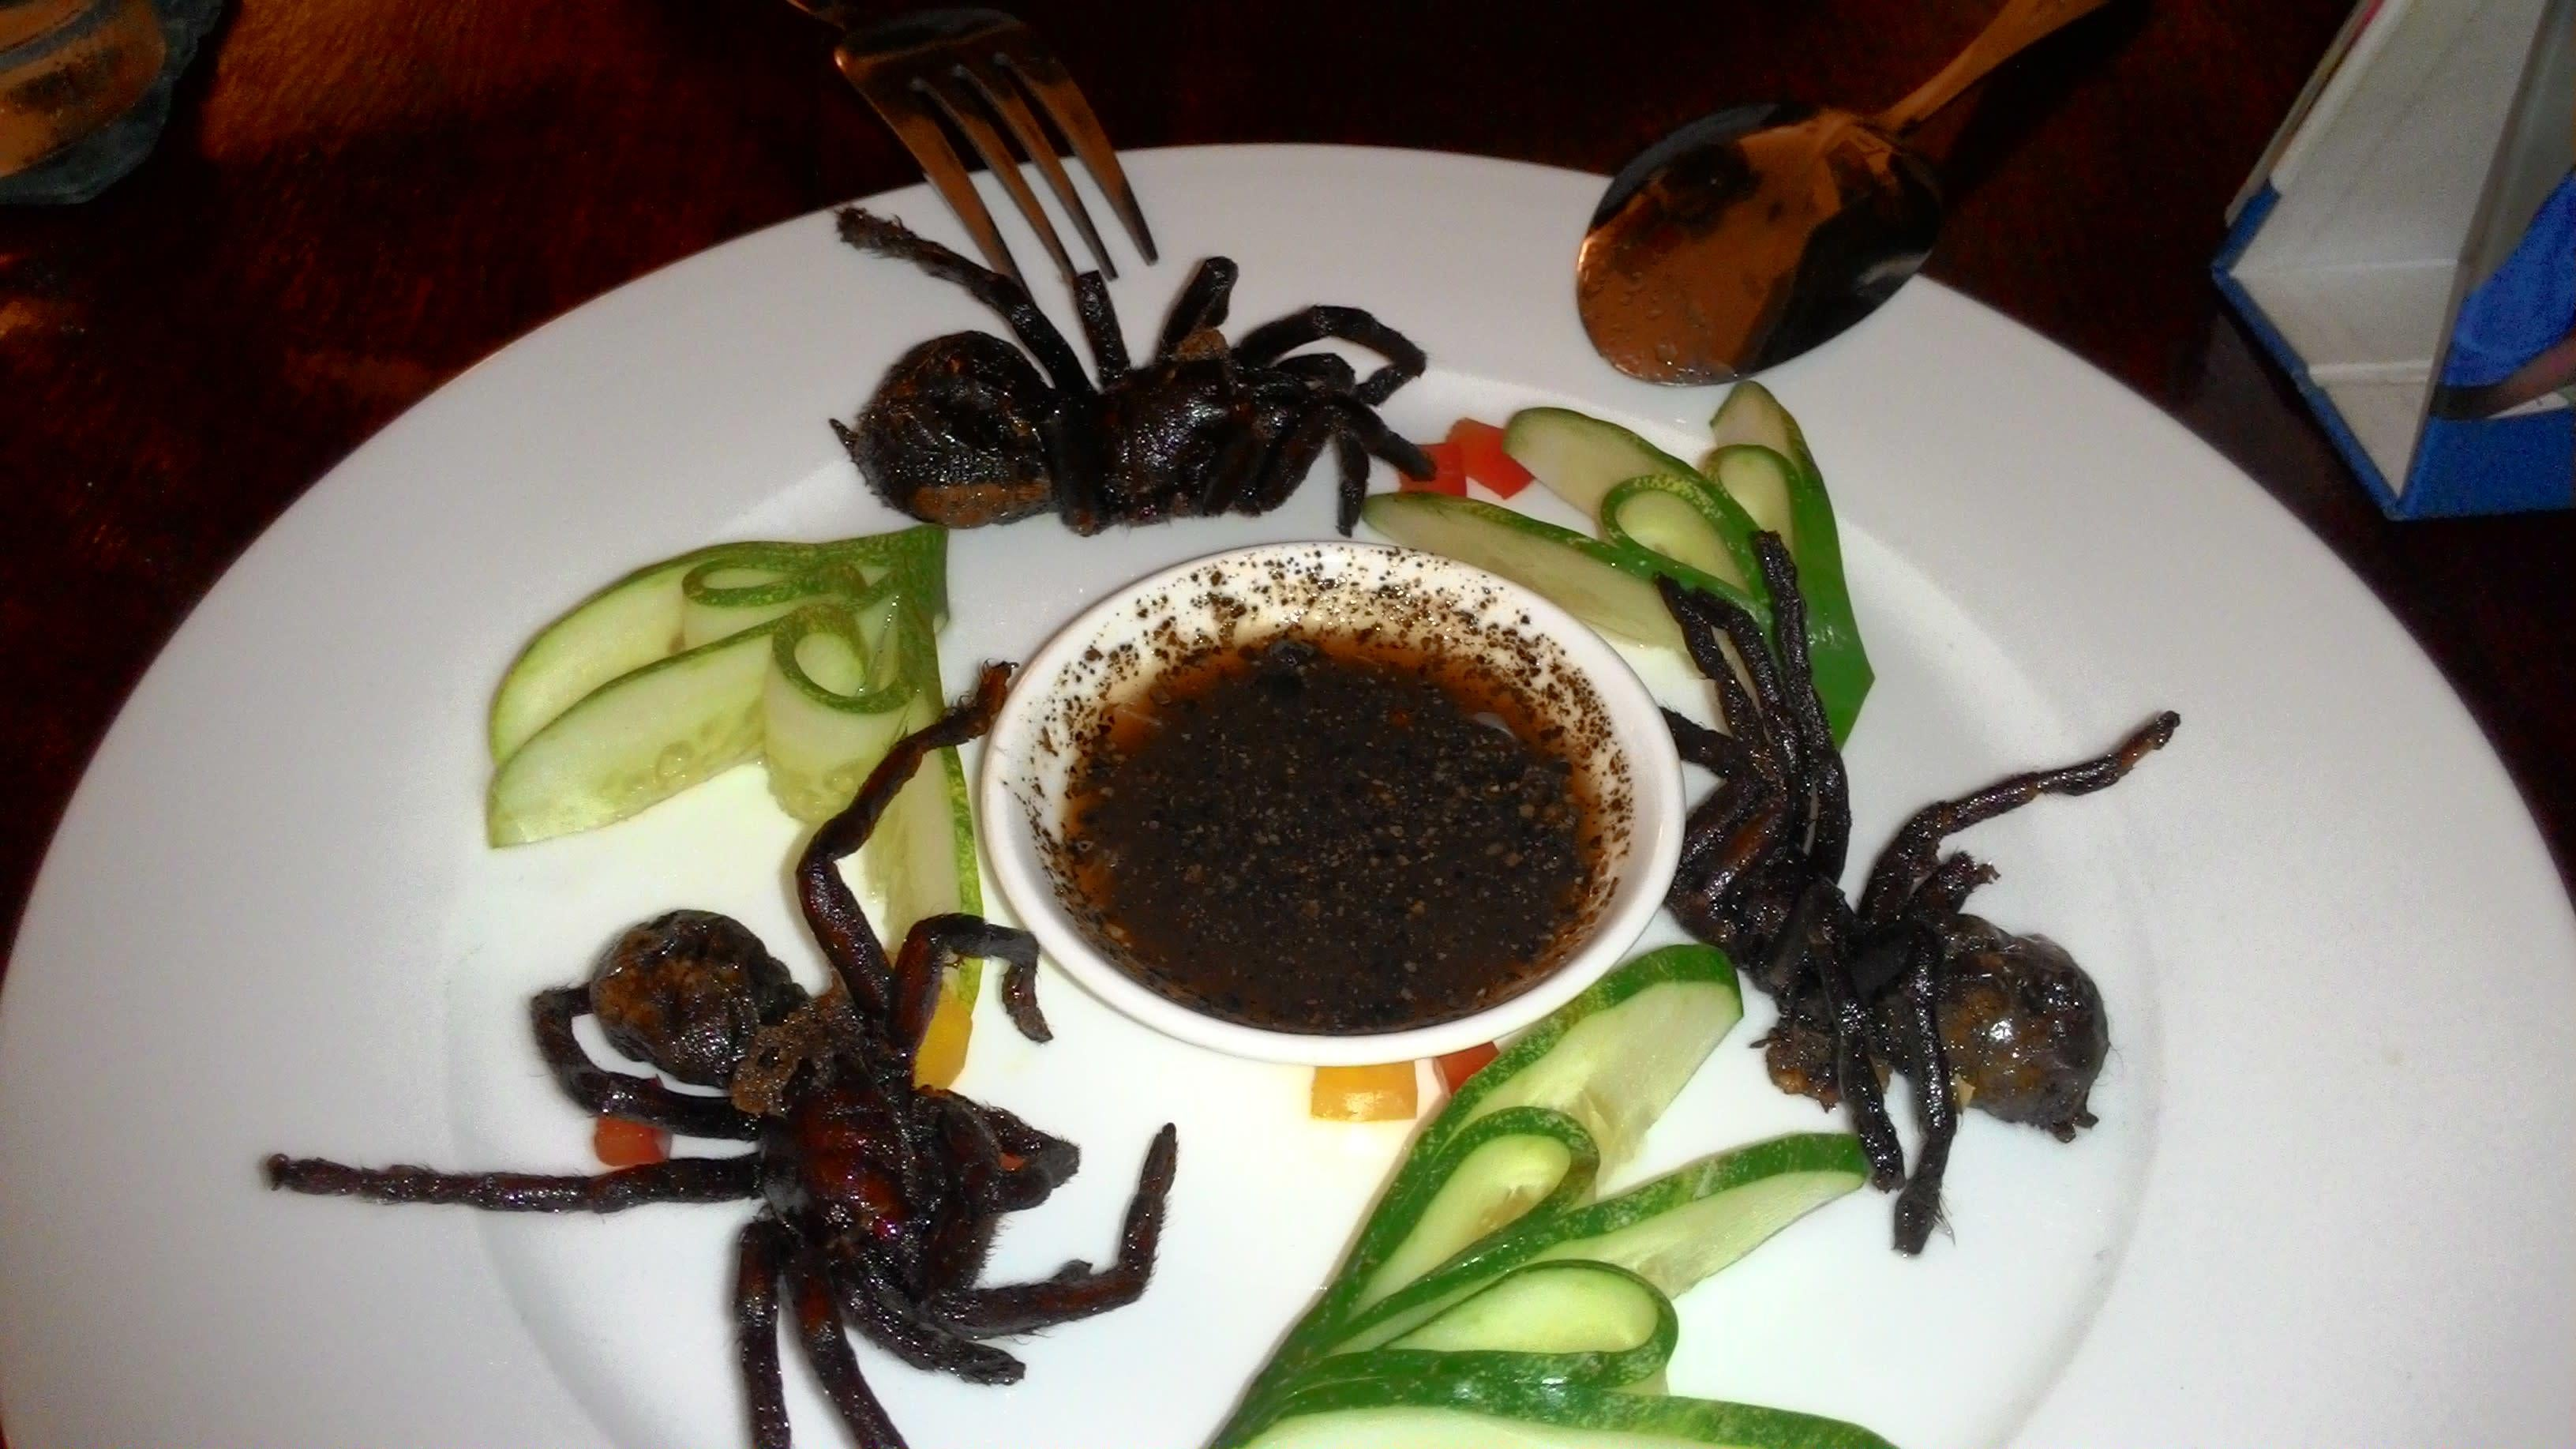 Some Edible Insects Beat Orange Juice And Olive Oil In Antioxidant Test